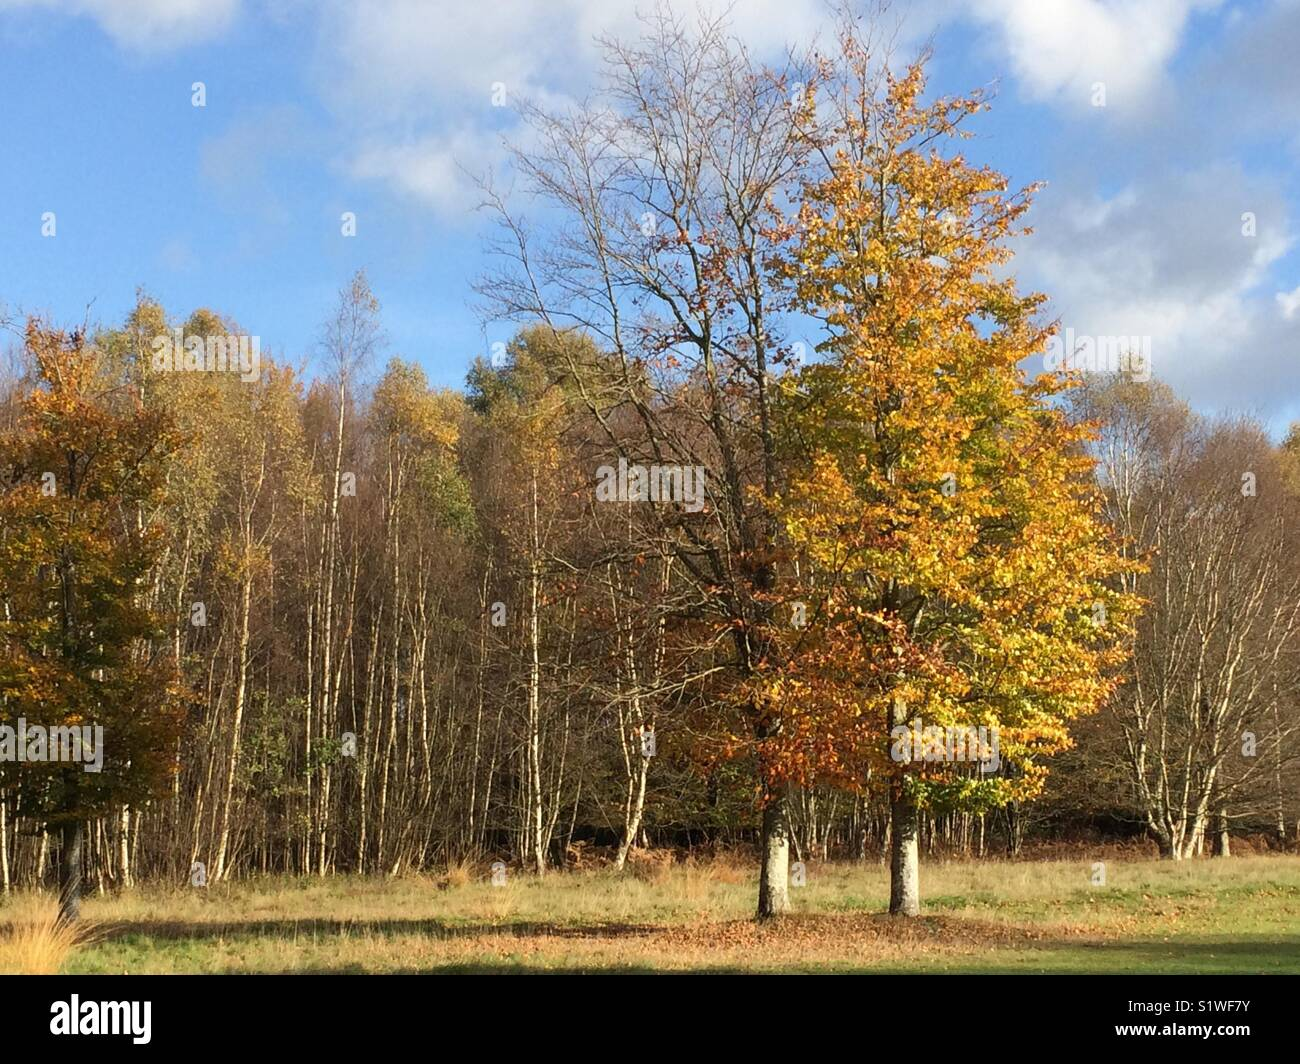 Autumn colours on trees at Paultons Golf course near Romsey, Hampshire, UK Stock Photo